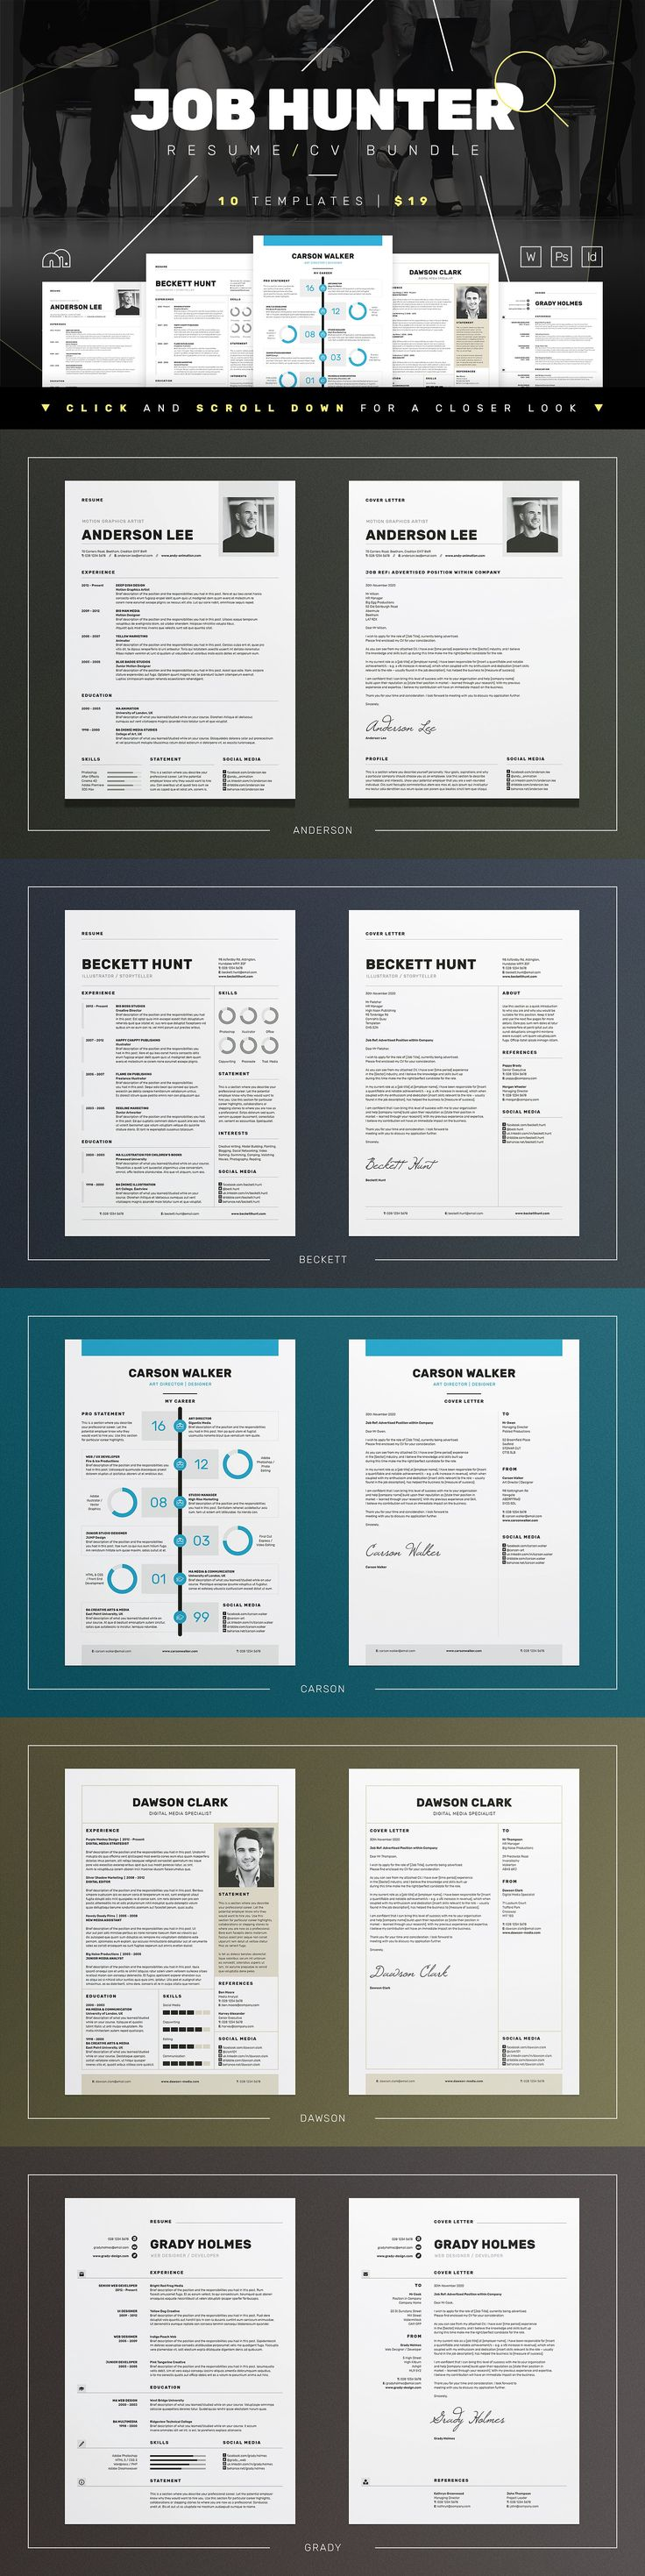 JOB HUNTER ResumeCV Bundle 11547 best